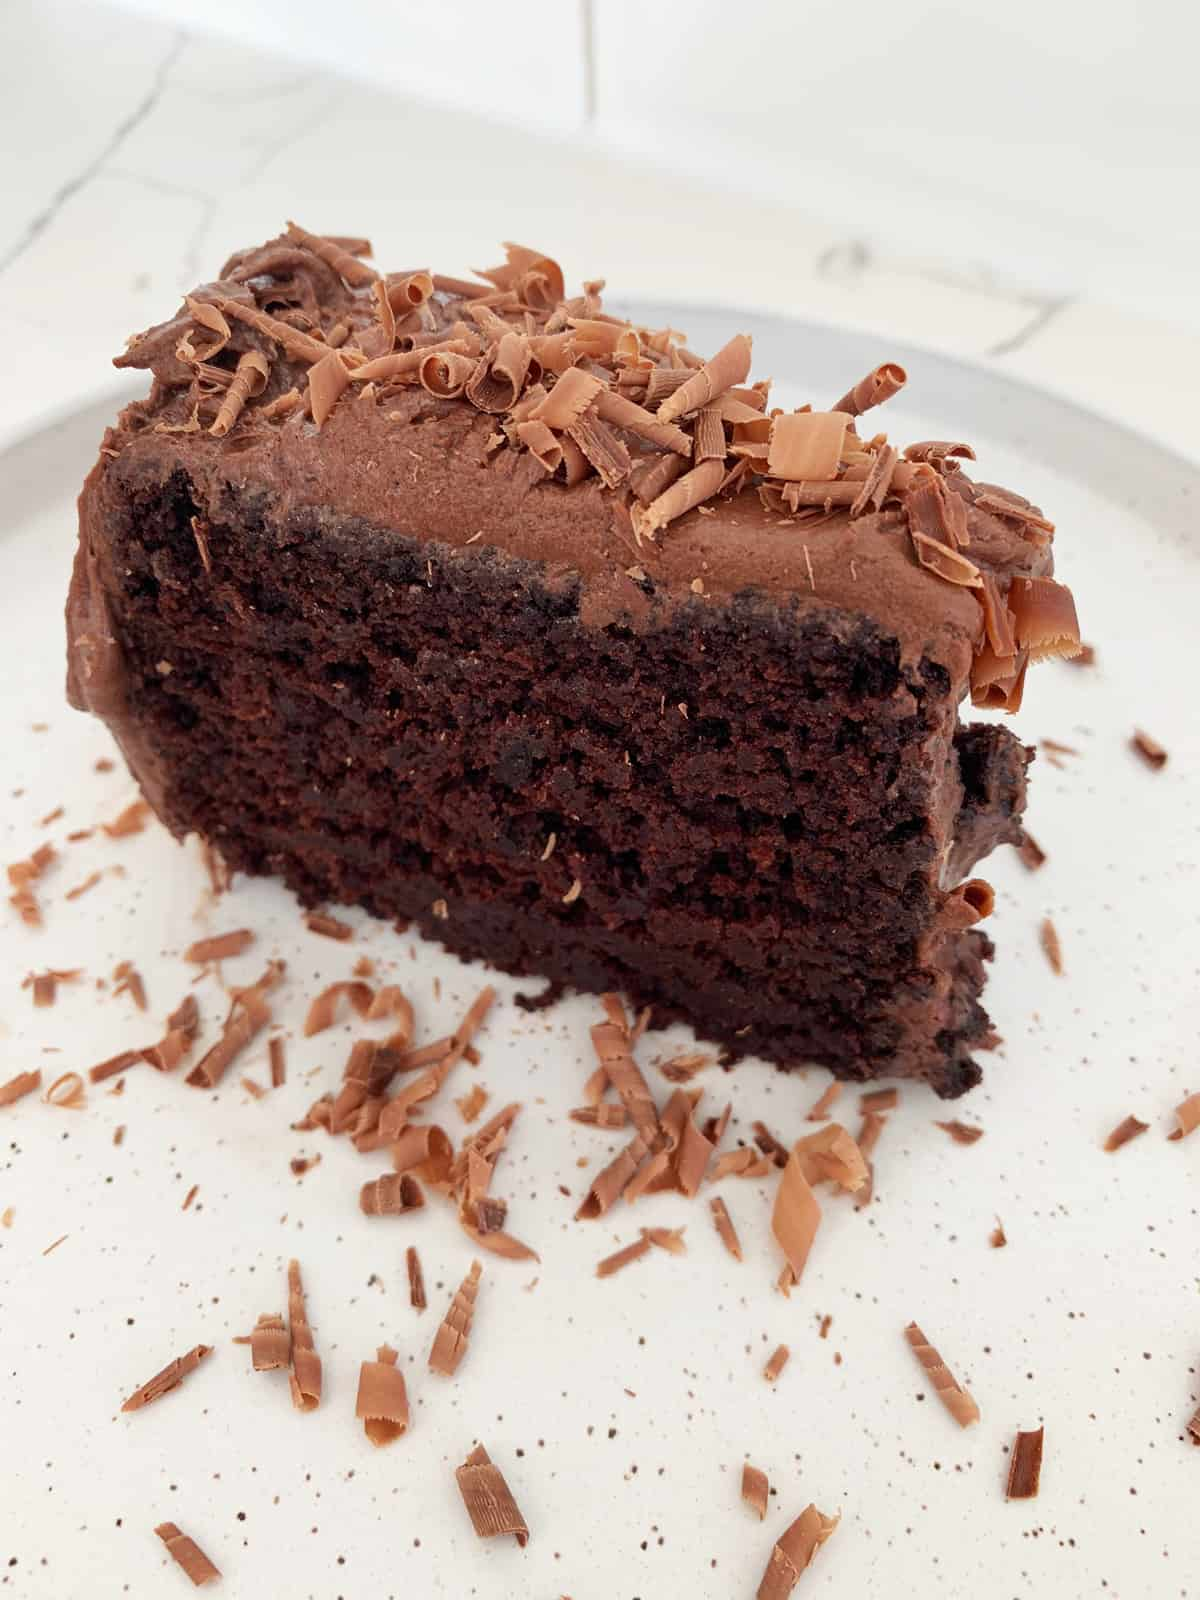 Chocolate Zucchini Cake Slice on a white plate with chocolate shavings as garnish on scattered on plate